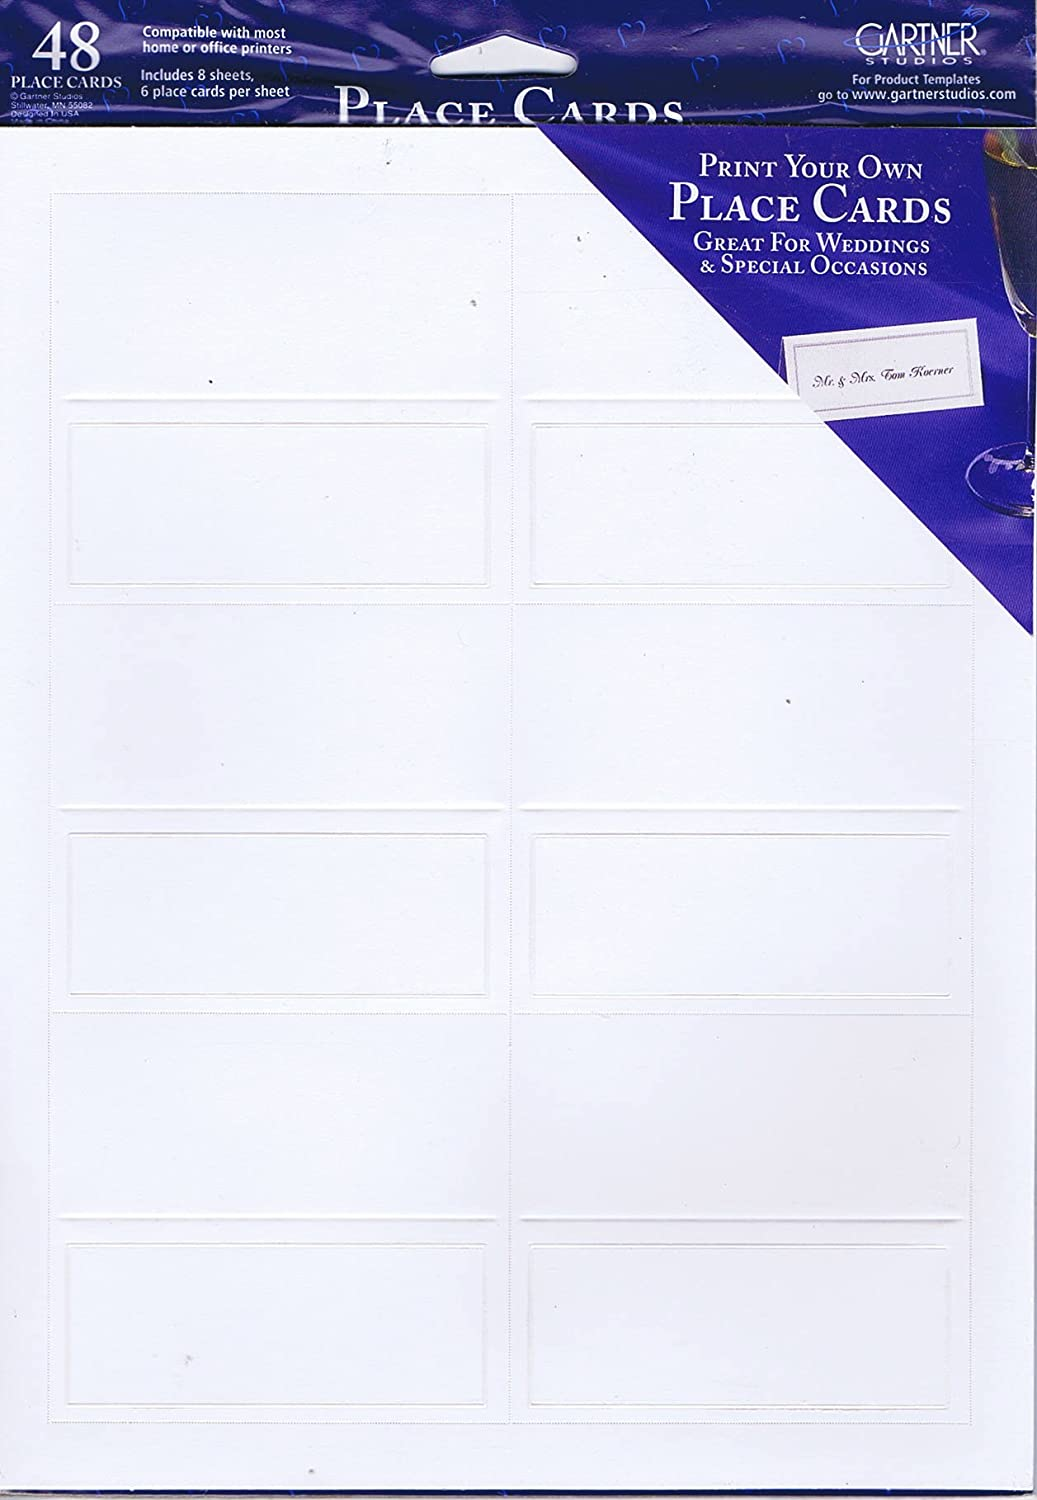 amazoncom gartner studios place cards white with pearl border 48 ct office products